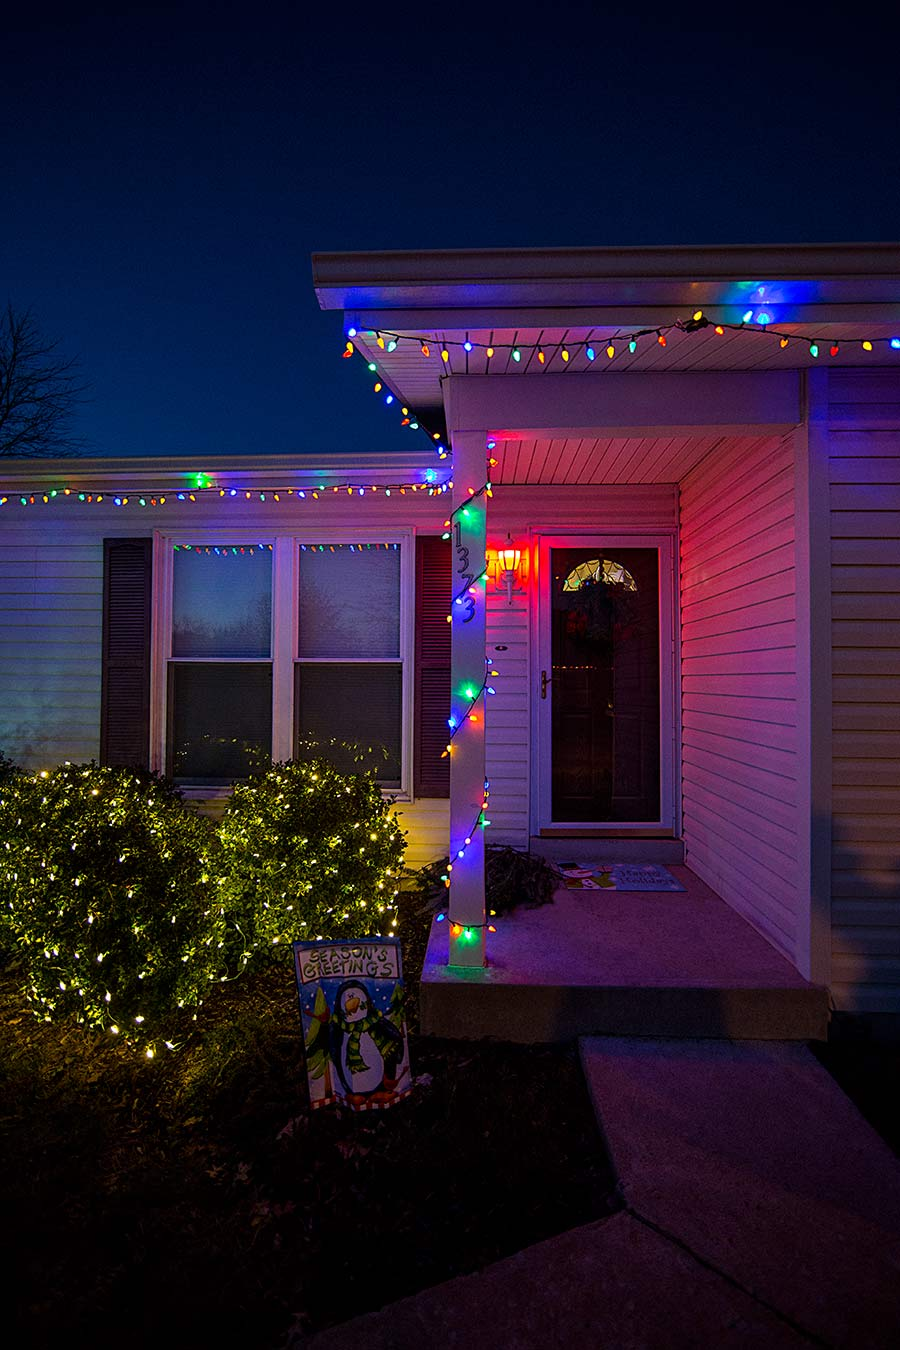 led energy buy in bulbs pack bulb light the best overall efficient outdoor to porch lux